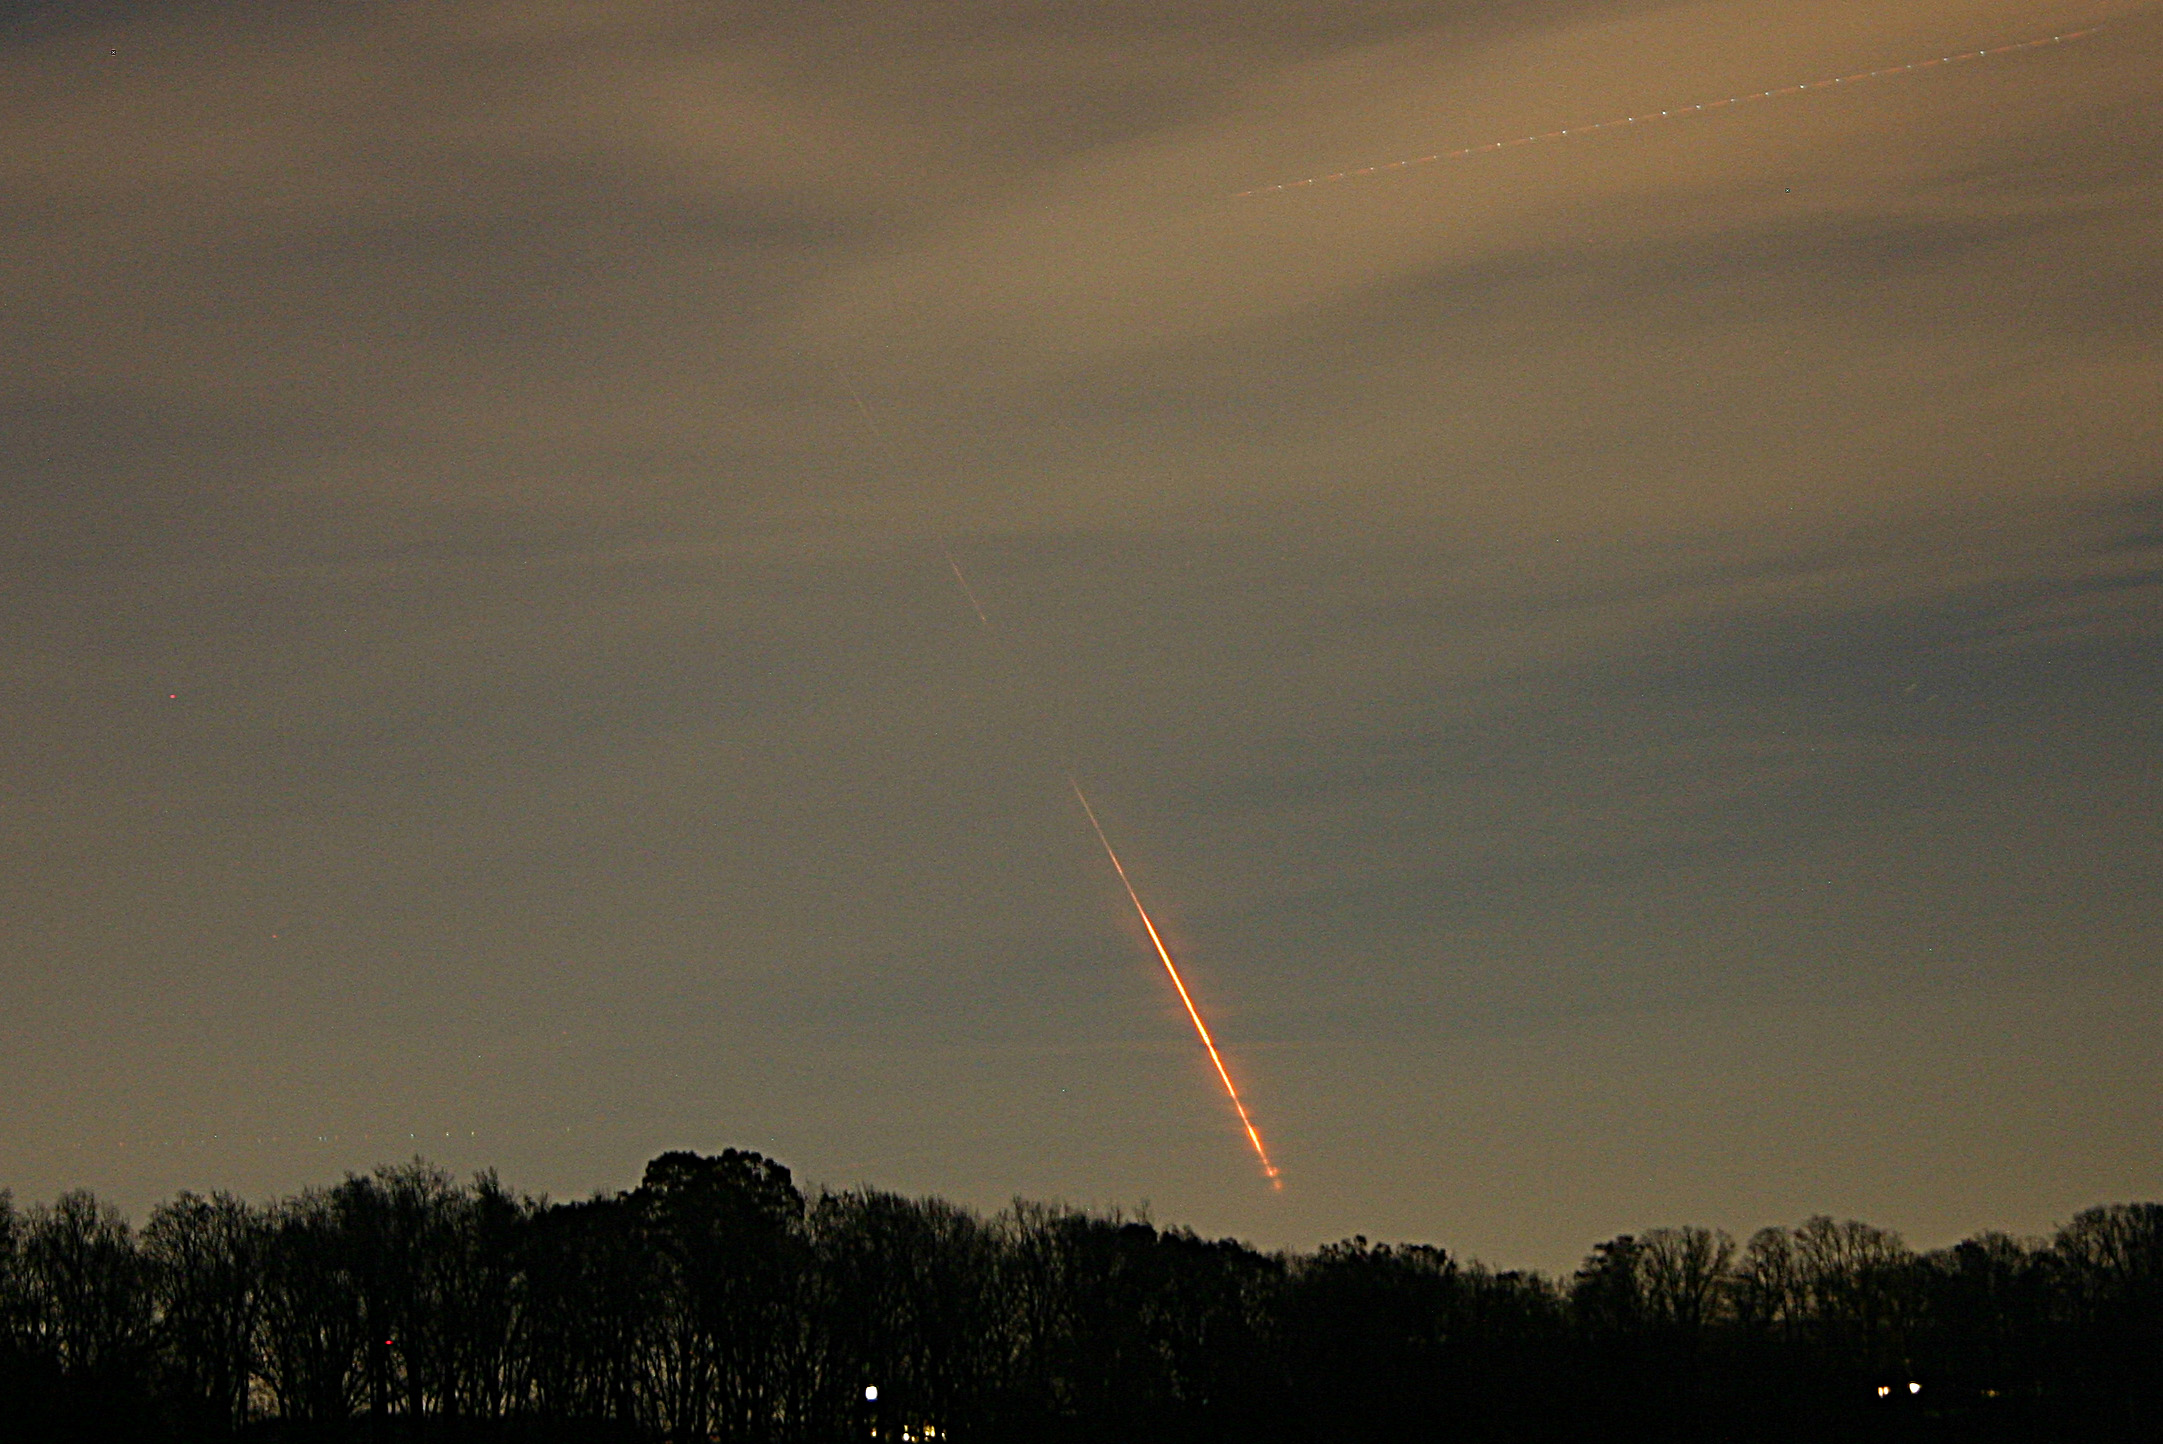 Minotaur 1 viewed from New Windsor, Maryland